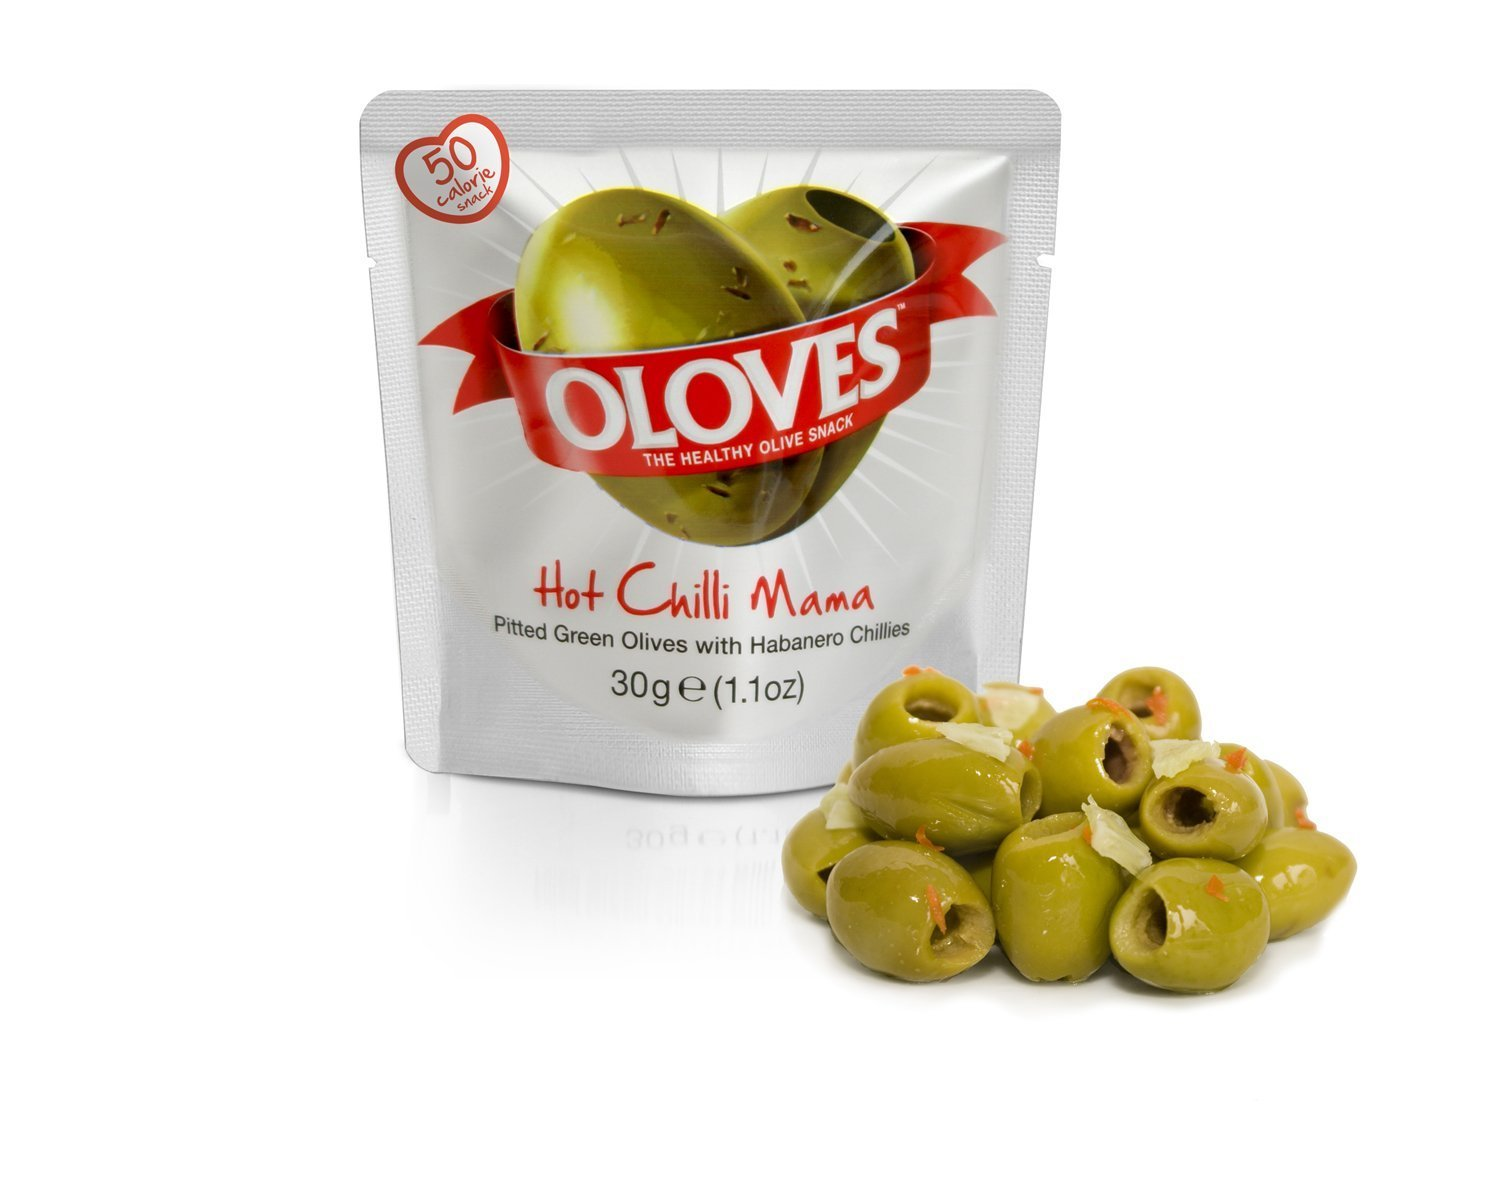 Oloves Hot chilli mama, 48 x 1.1oz, Pitted Green Olives with Habanero Chilli